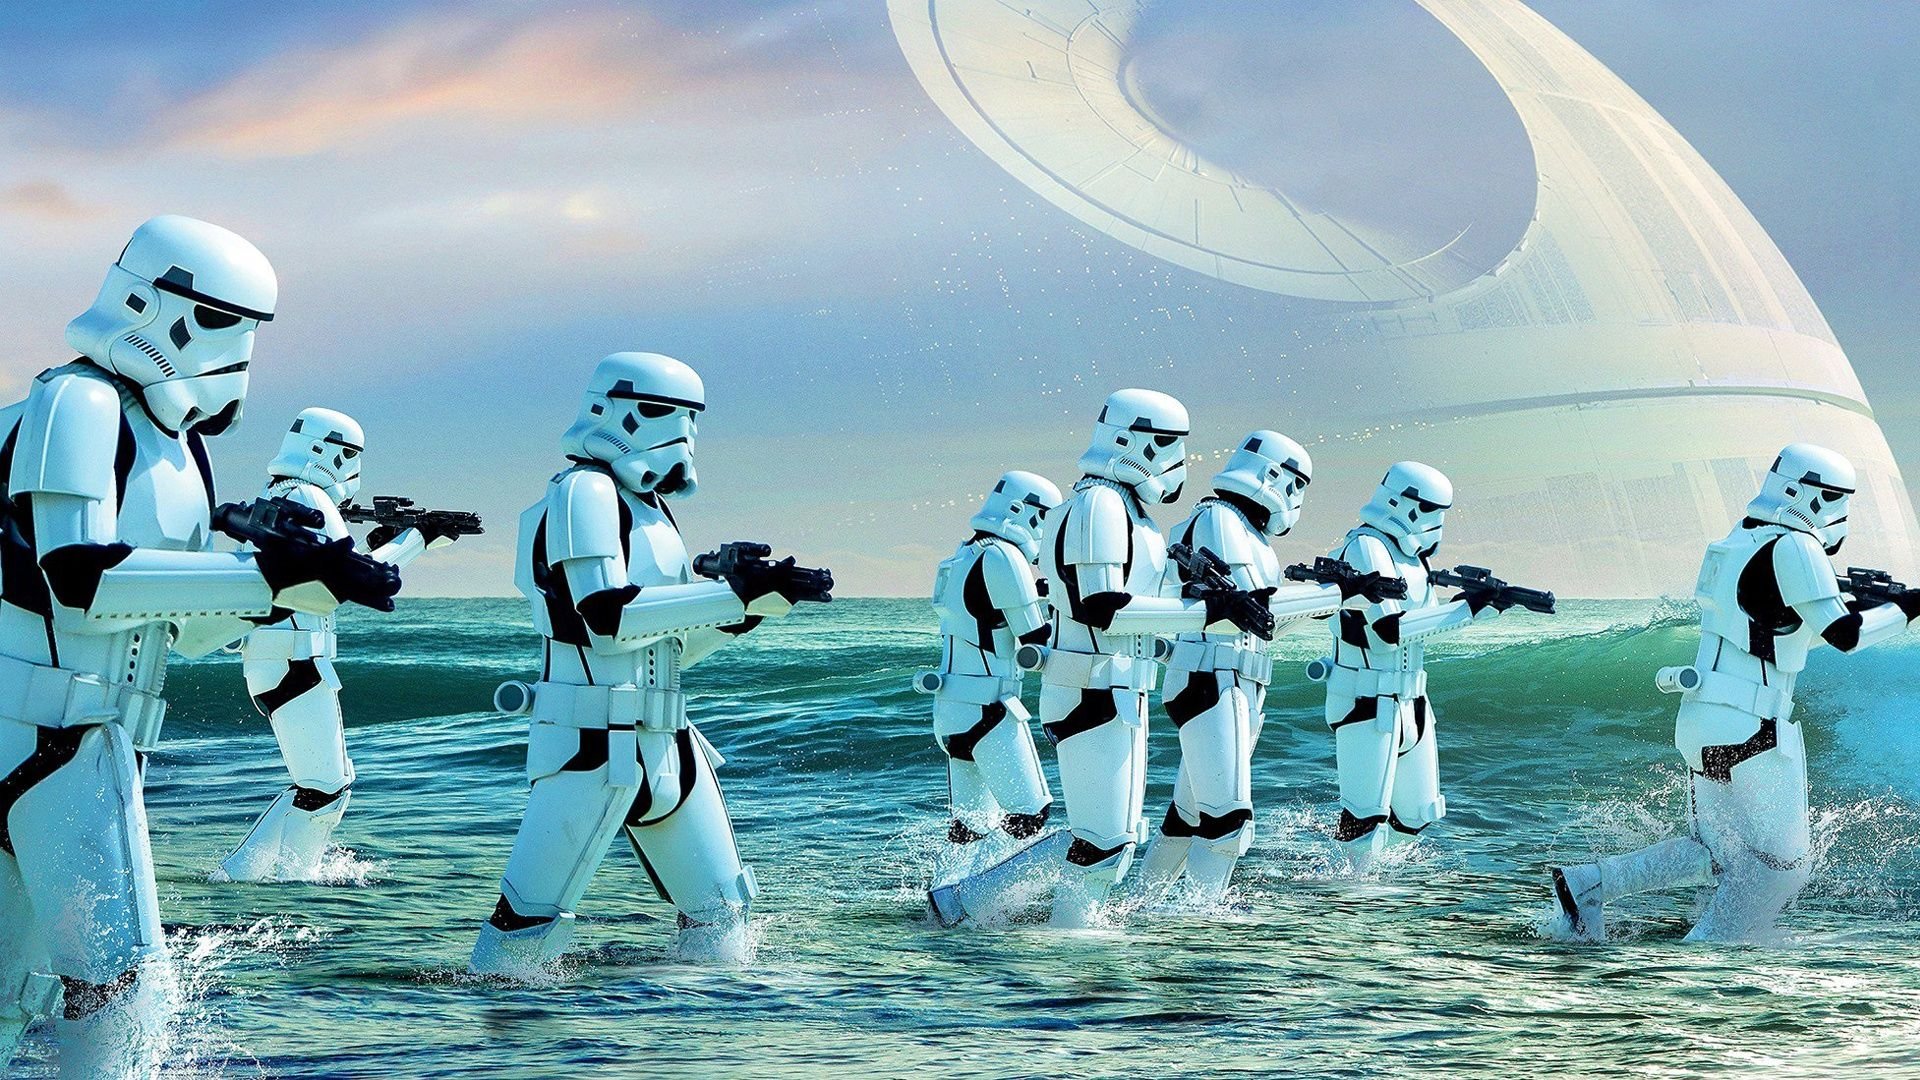 Star Wars Screensaver Picture